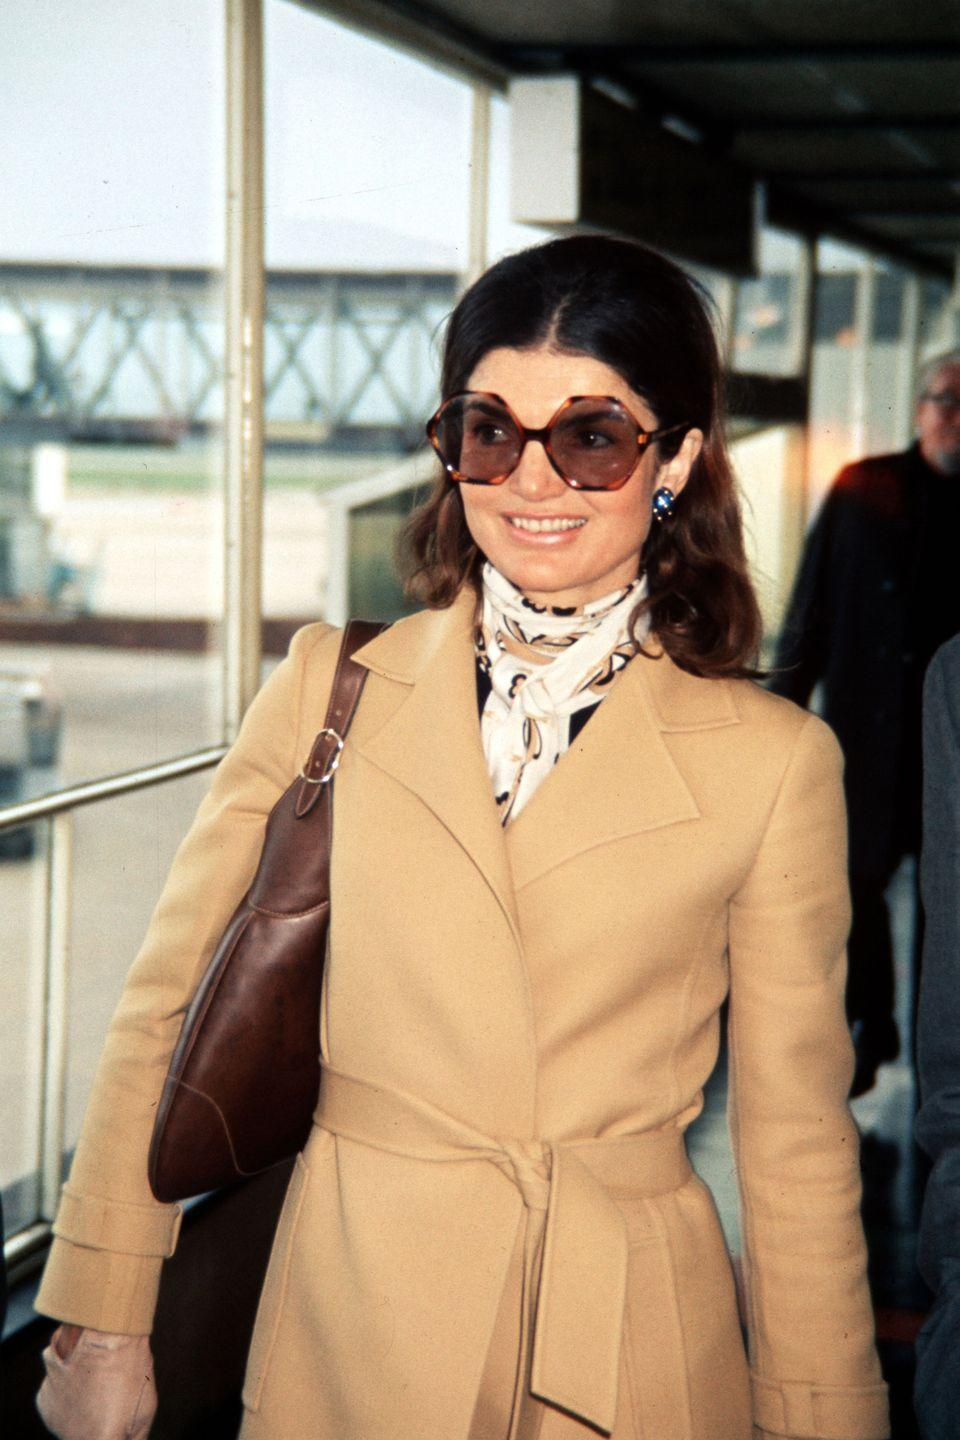 <p>In perfect early 70s style, Jackie pairs a camel coat and large framed sunglasses with a brown leather handbag and insouciant scarf tied around her neck. </p>